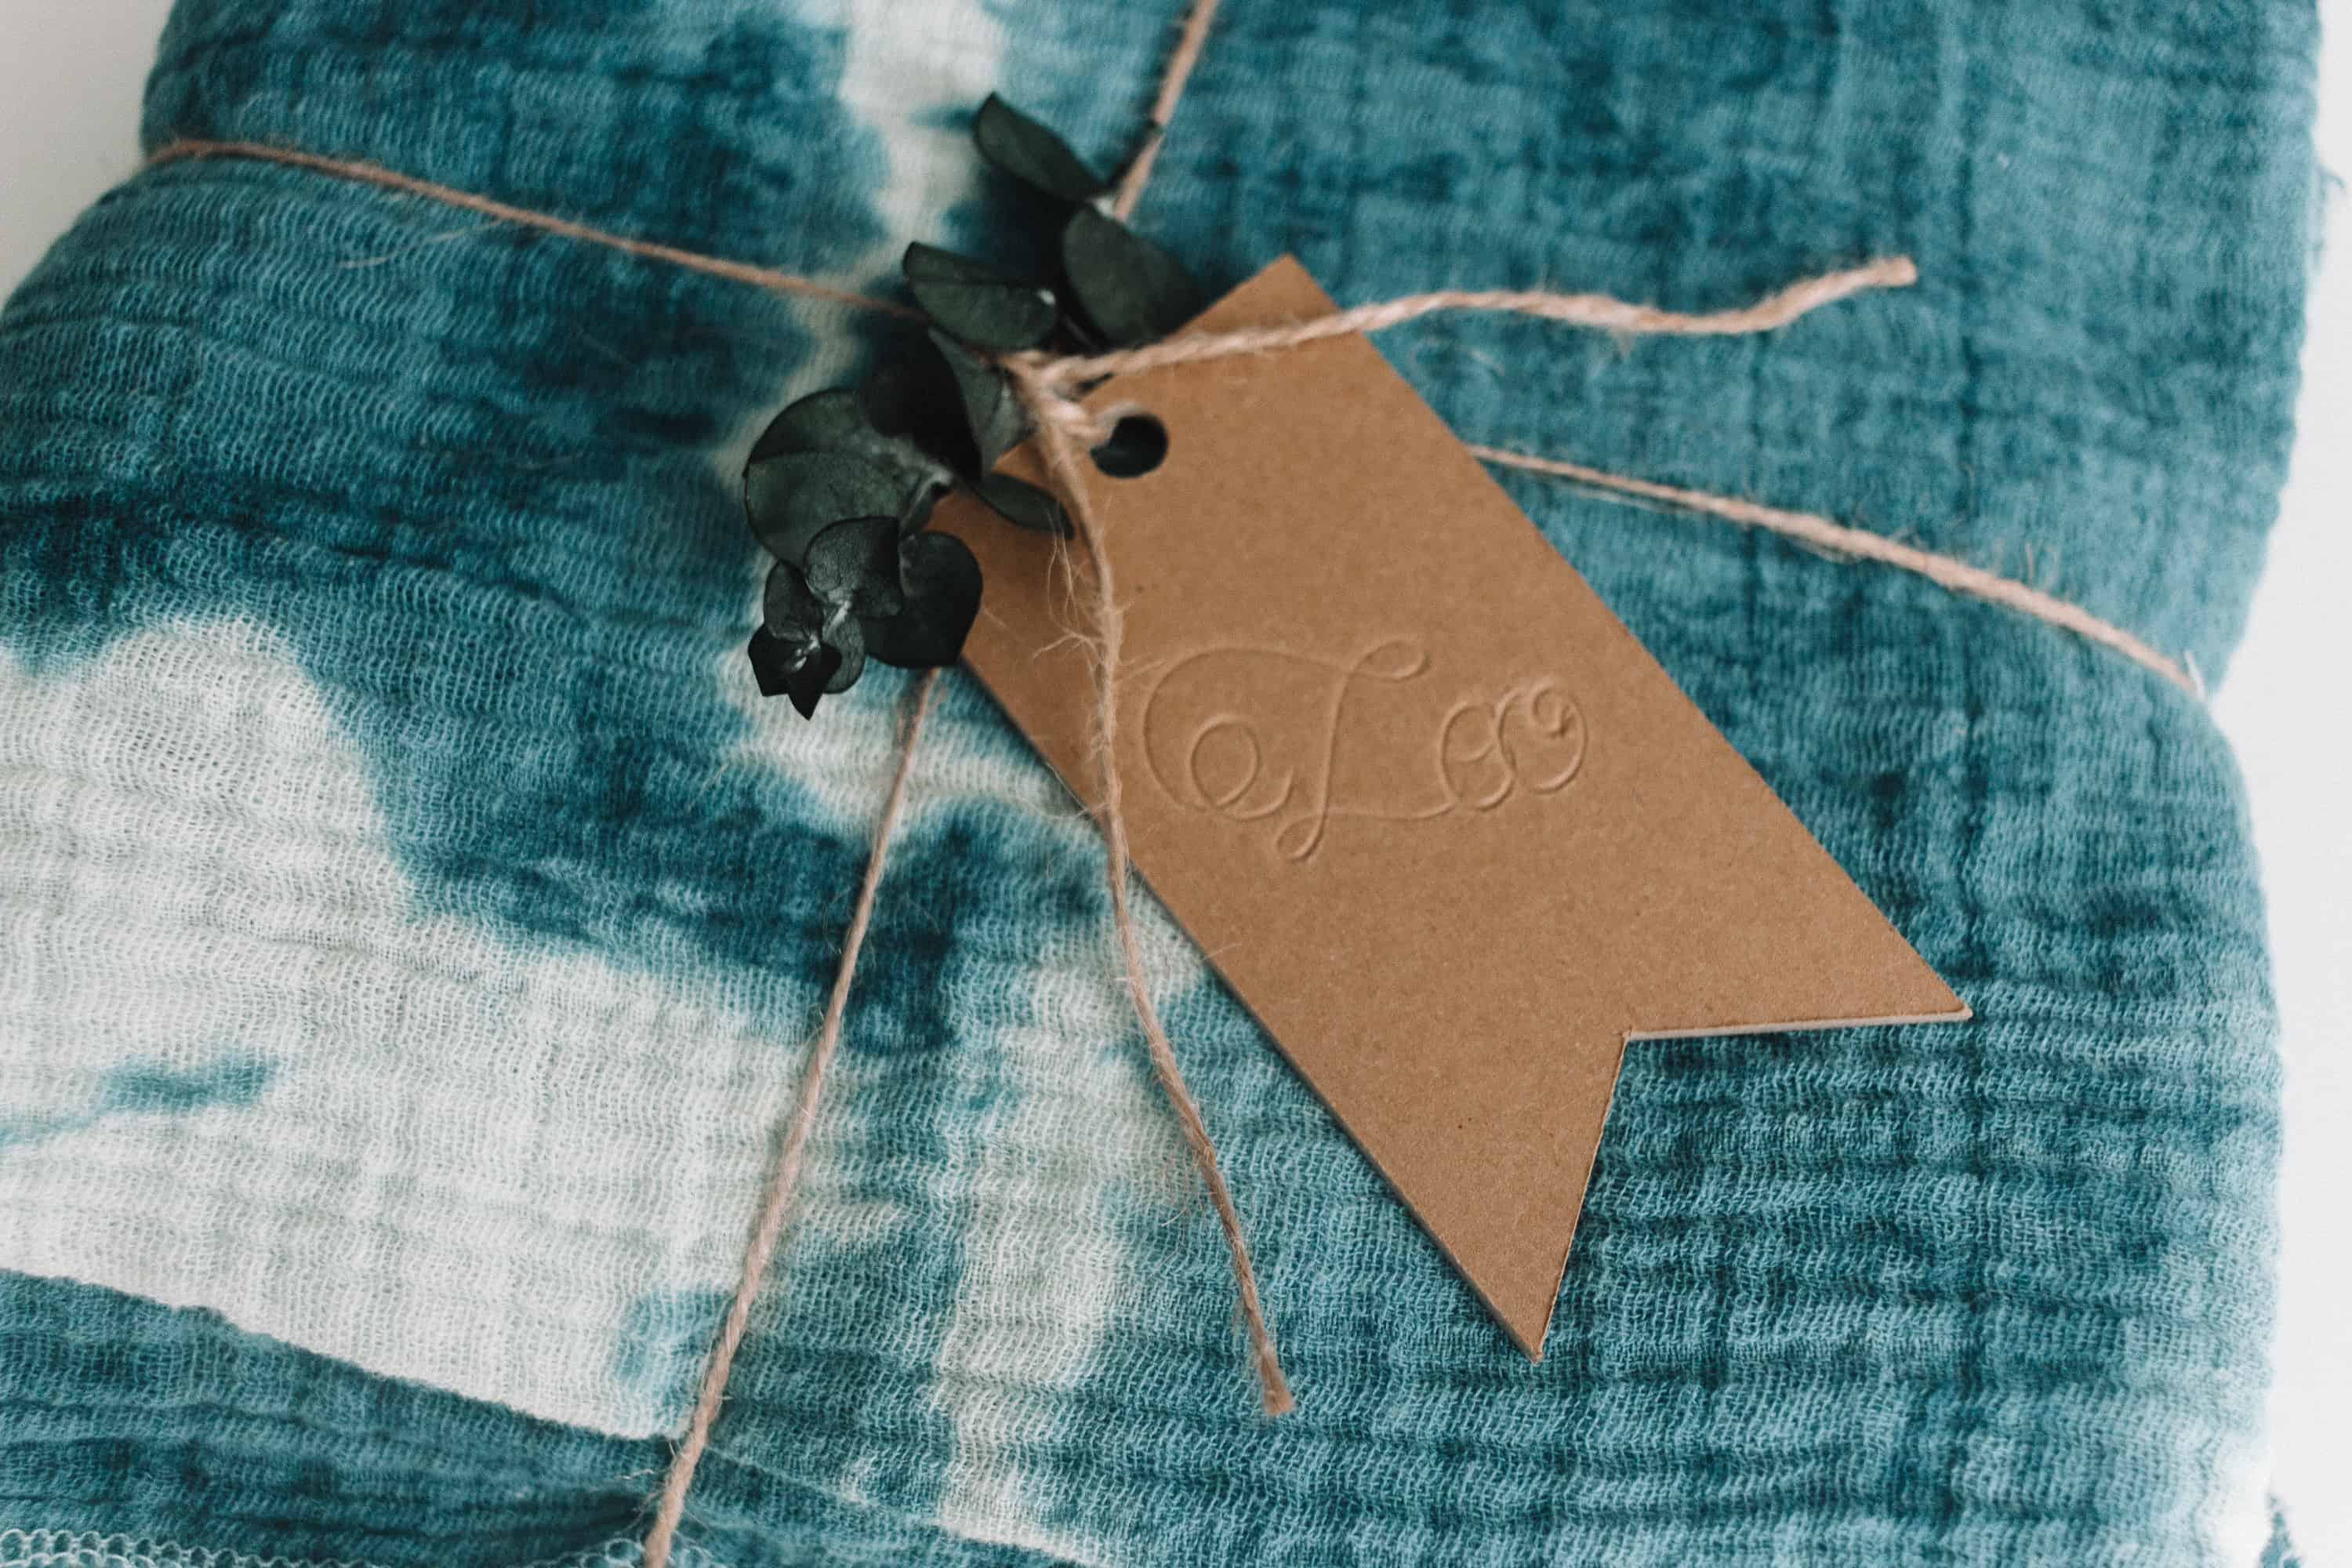 Engraved Gift Tags made with your Cricut Maker and Cricut Scoring Wheel! From overthebigmoon.com!